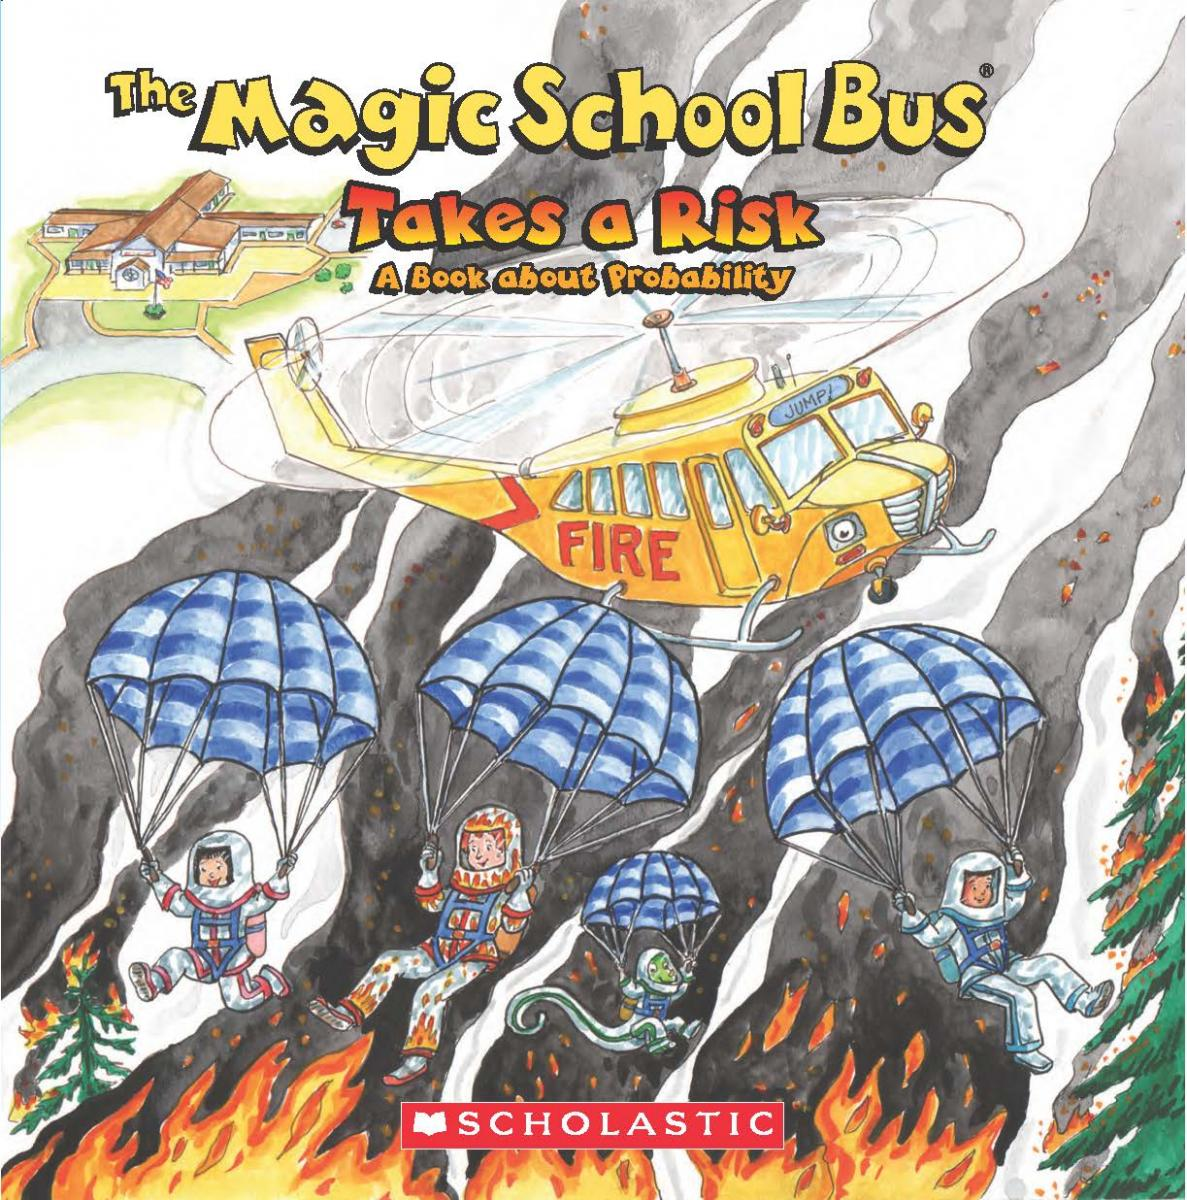 magic school bus american academy of actuaries